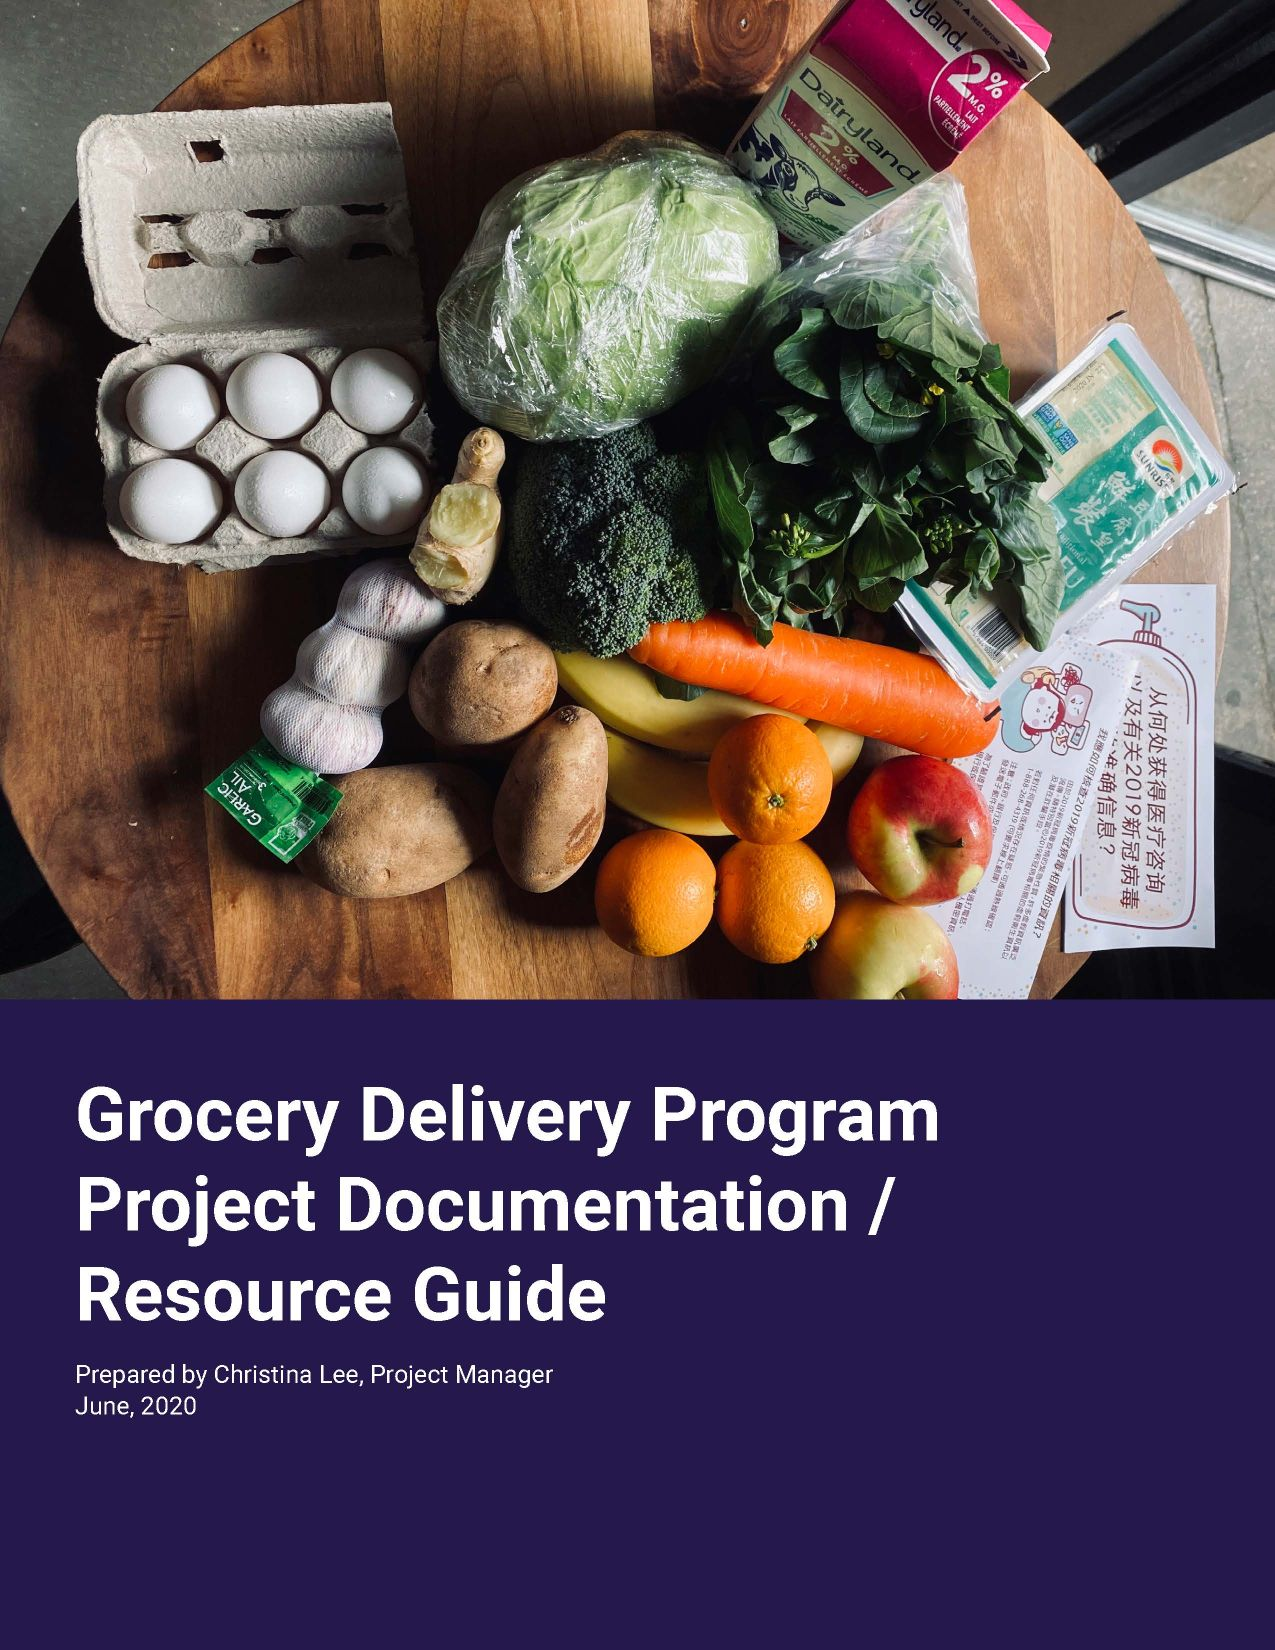 Grocery Delivery Program – Project Documentation / Resource Guide